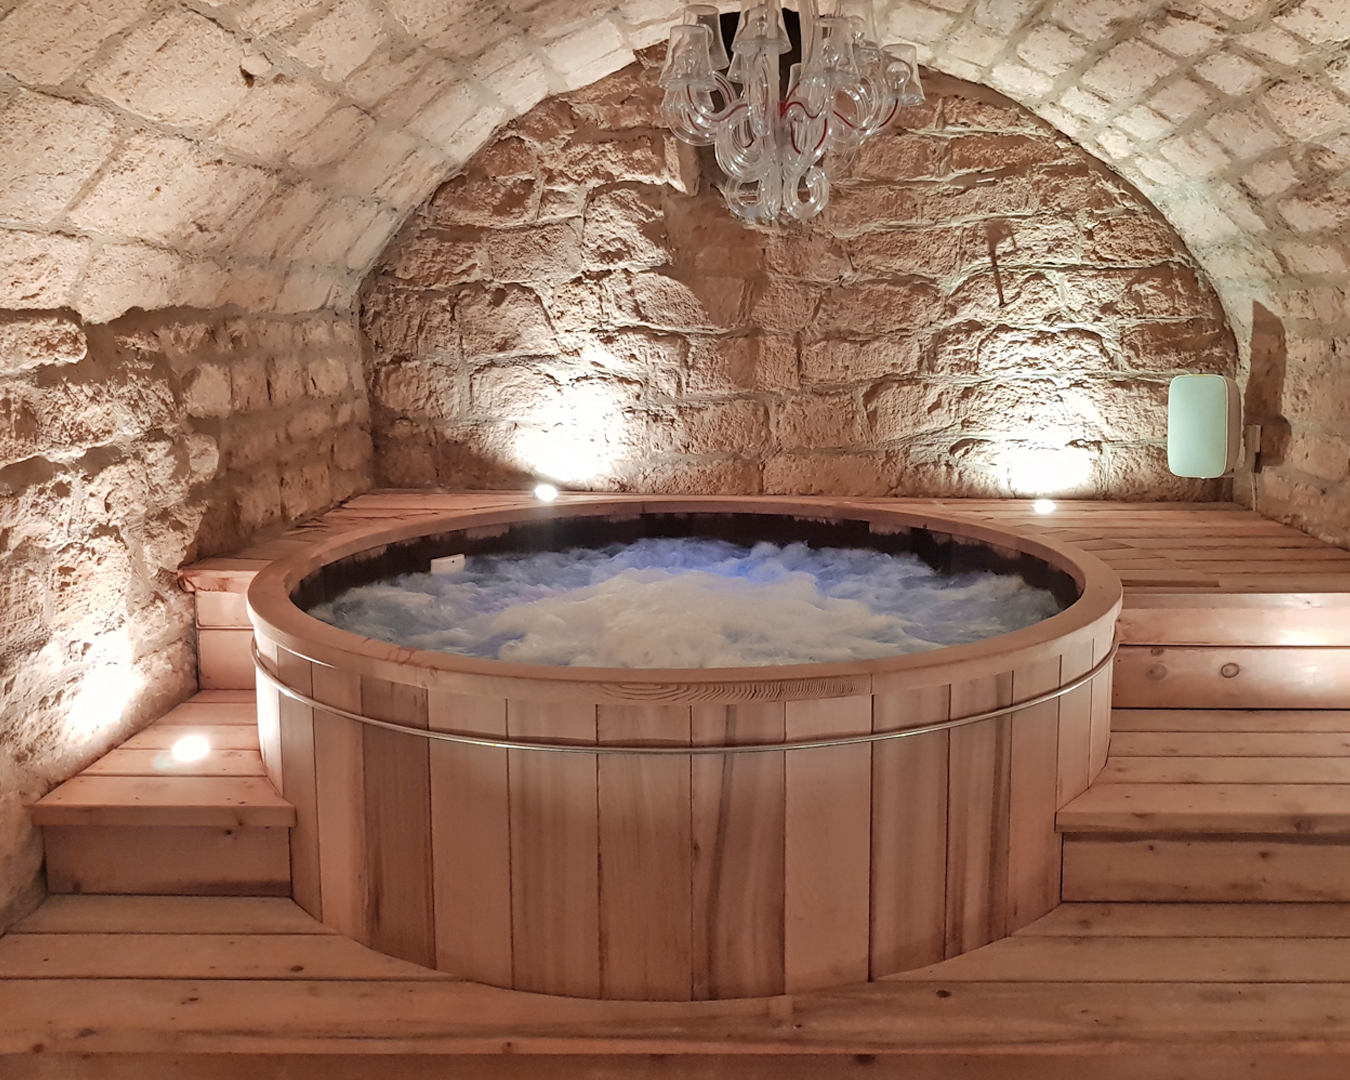 The amazing underground hot tub!